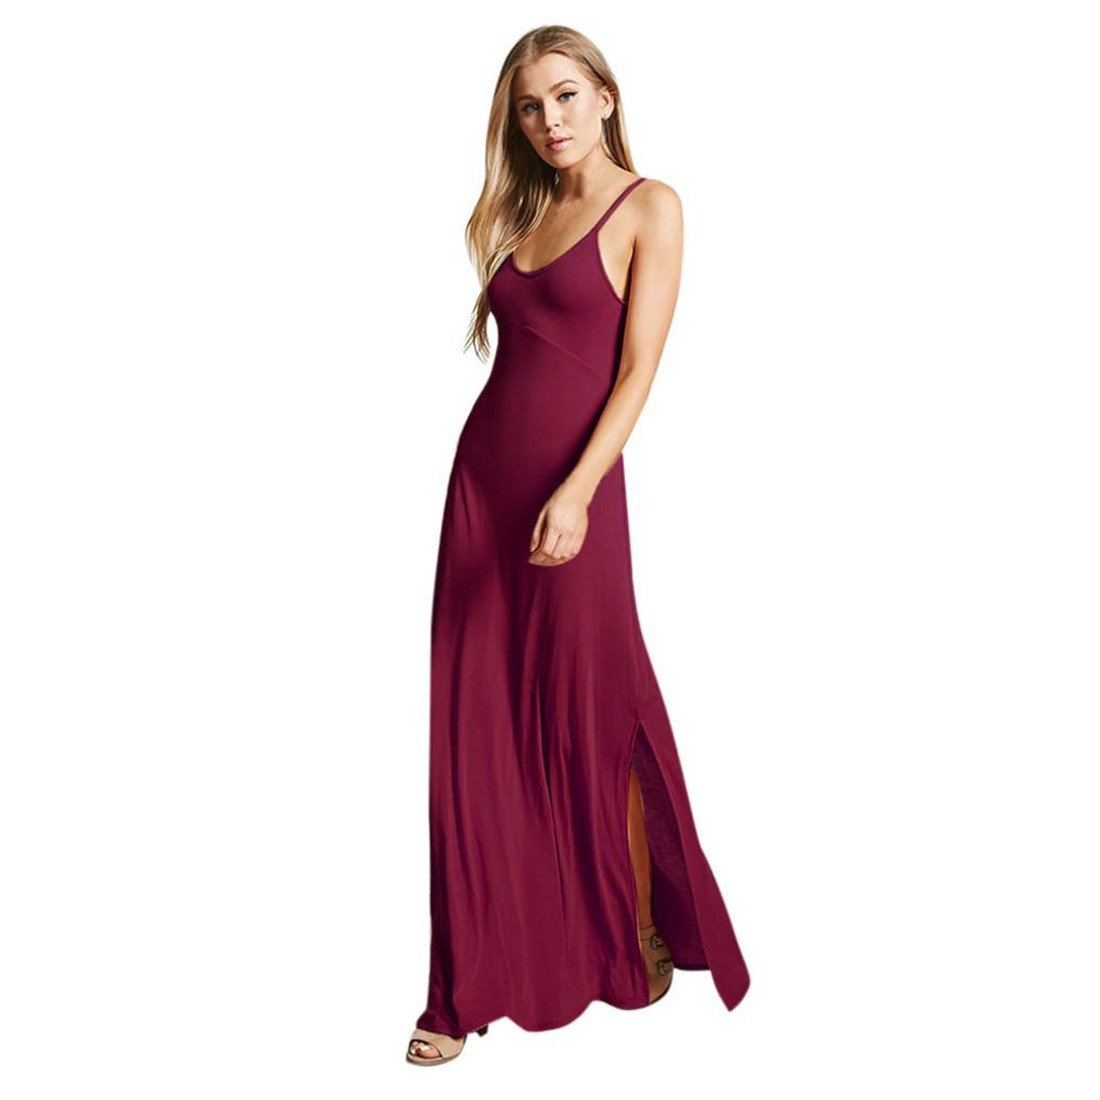 ... Neck Evening Party Dress Elegant Playsuit Jumpsuits Beach Maxi Dress For Ladies Fashion Casual Sexy New Look Autumn Summer Skirt: Amazon.co.uk: Clothing